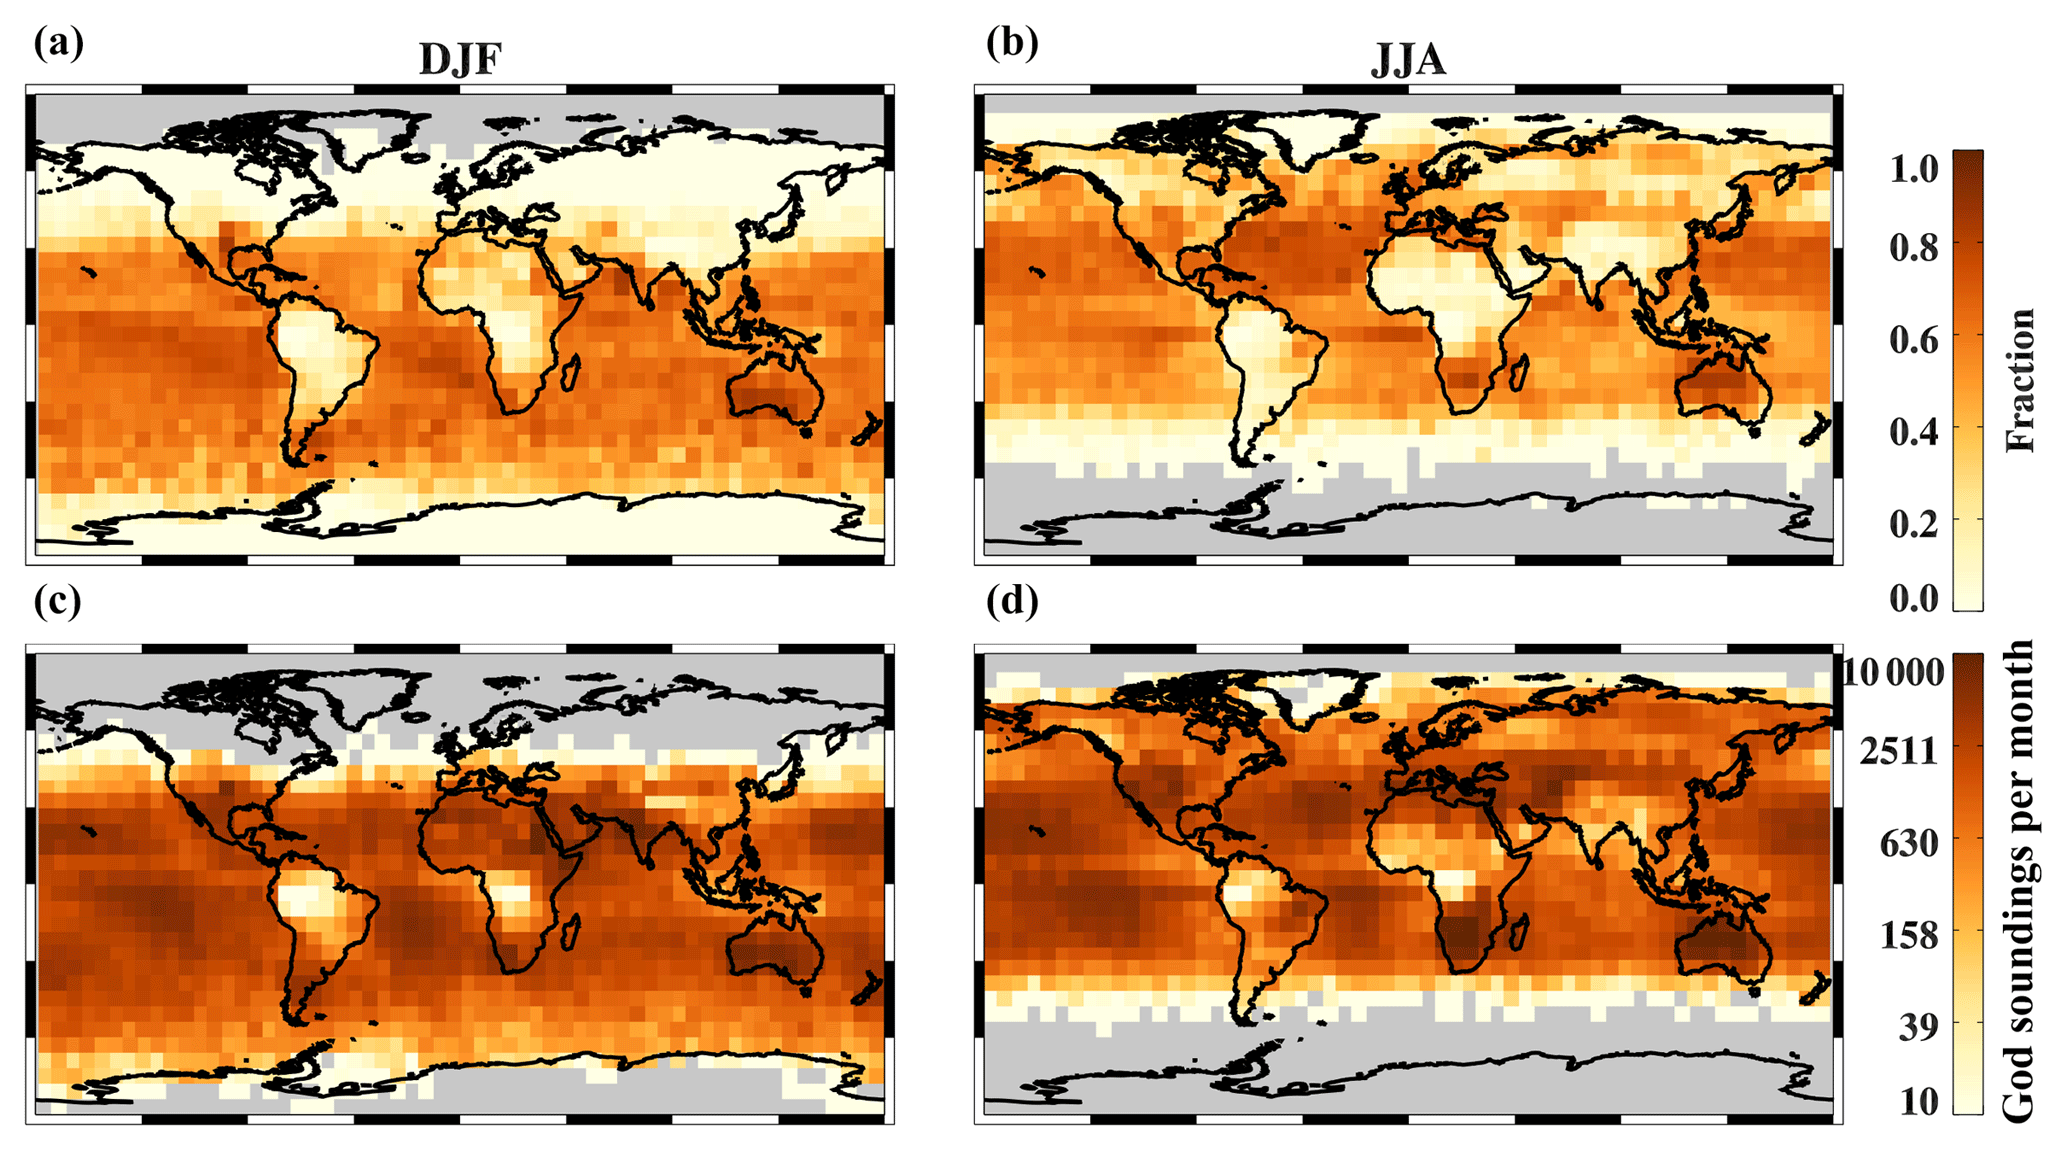 AMT - Improved retrievals of carbon dioxide from Orbiting